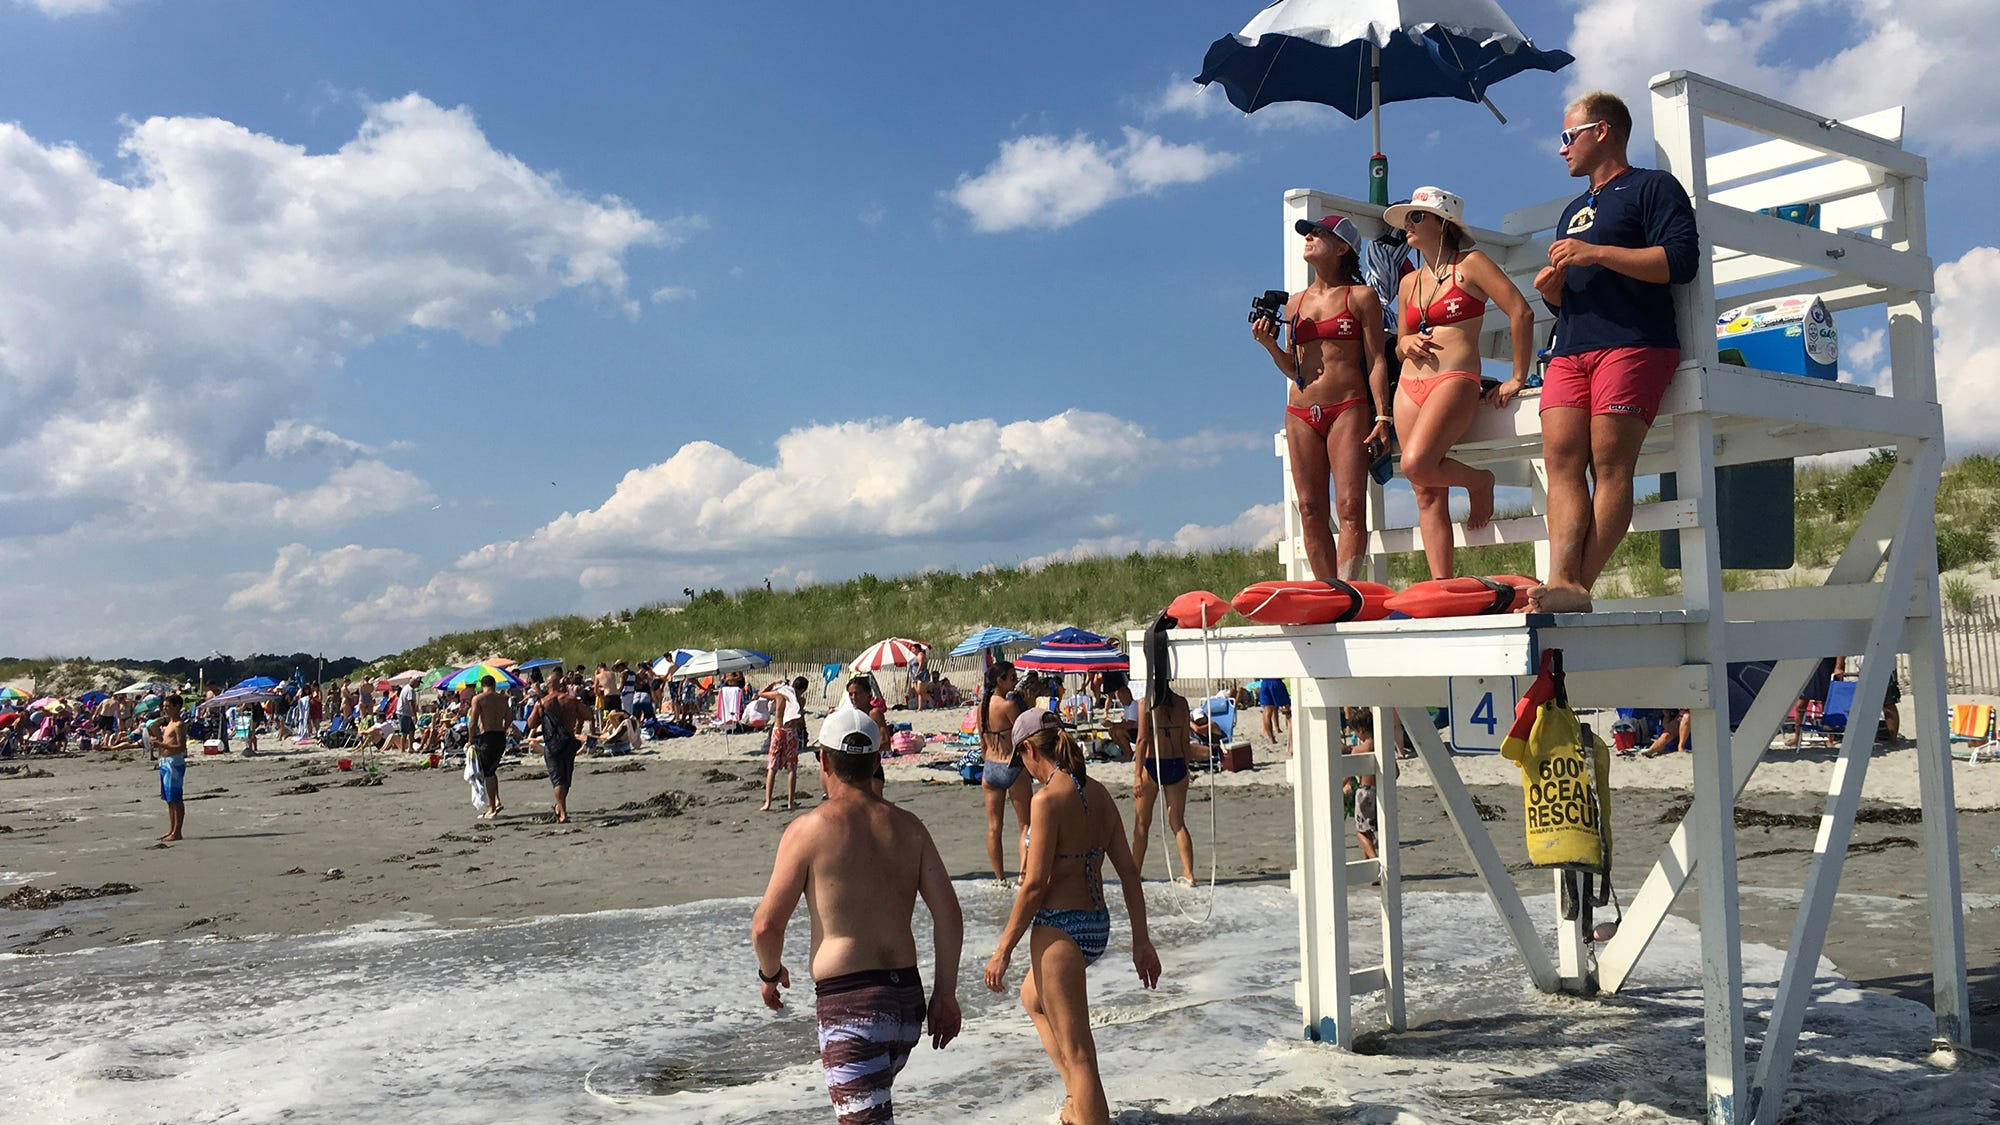 Lifeguards keep watch at Second Beach in Middletown on Wednesday afternoon.